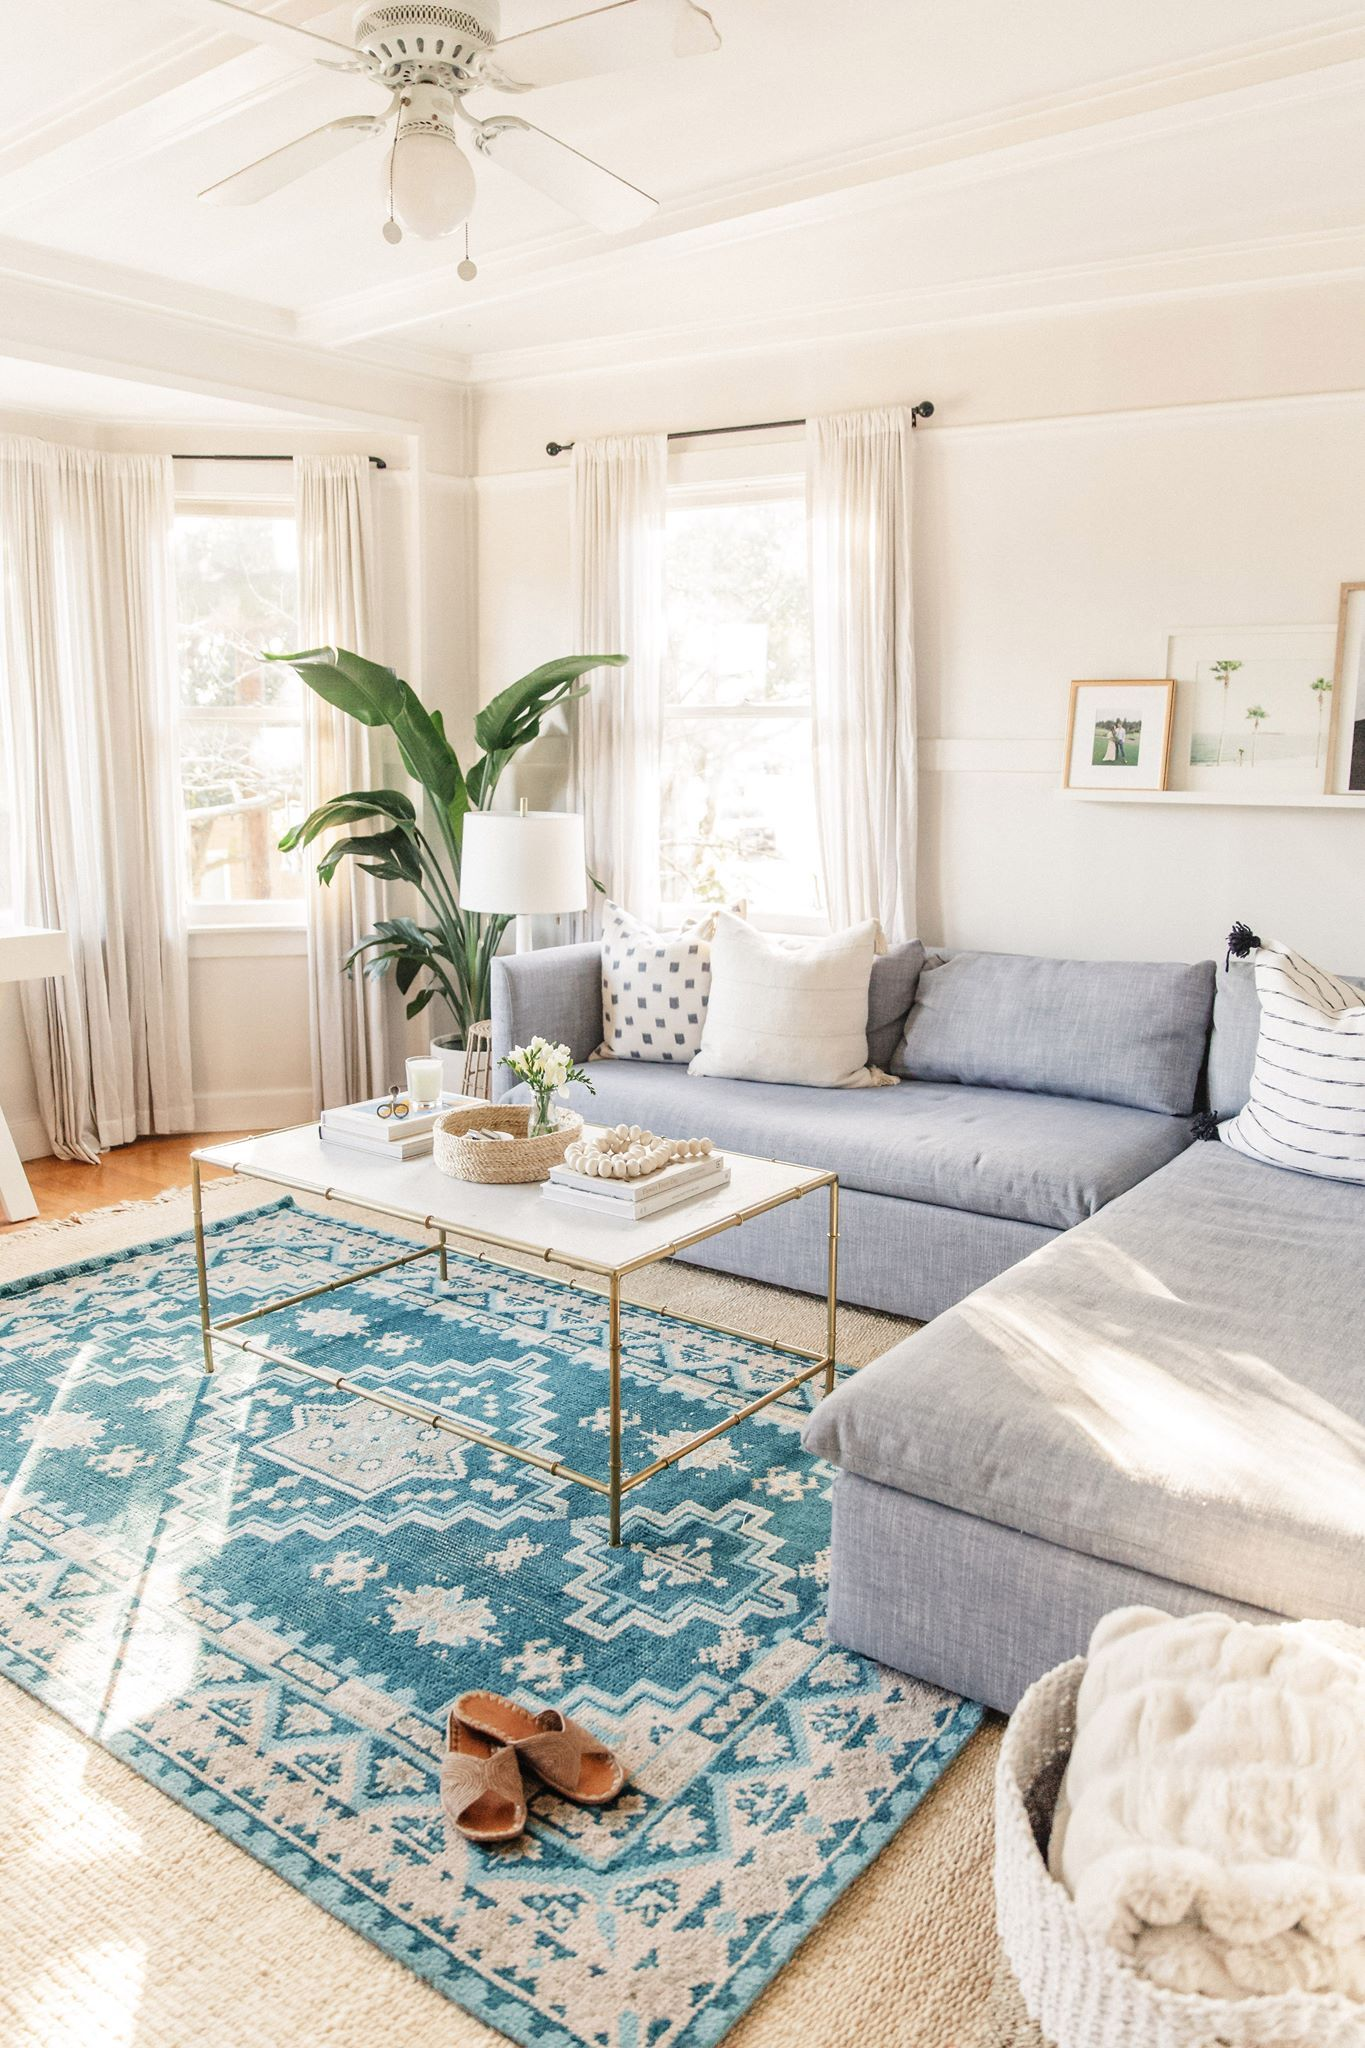 The color pop from the rug really makes this space a lot more interesting and grounds